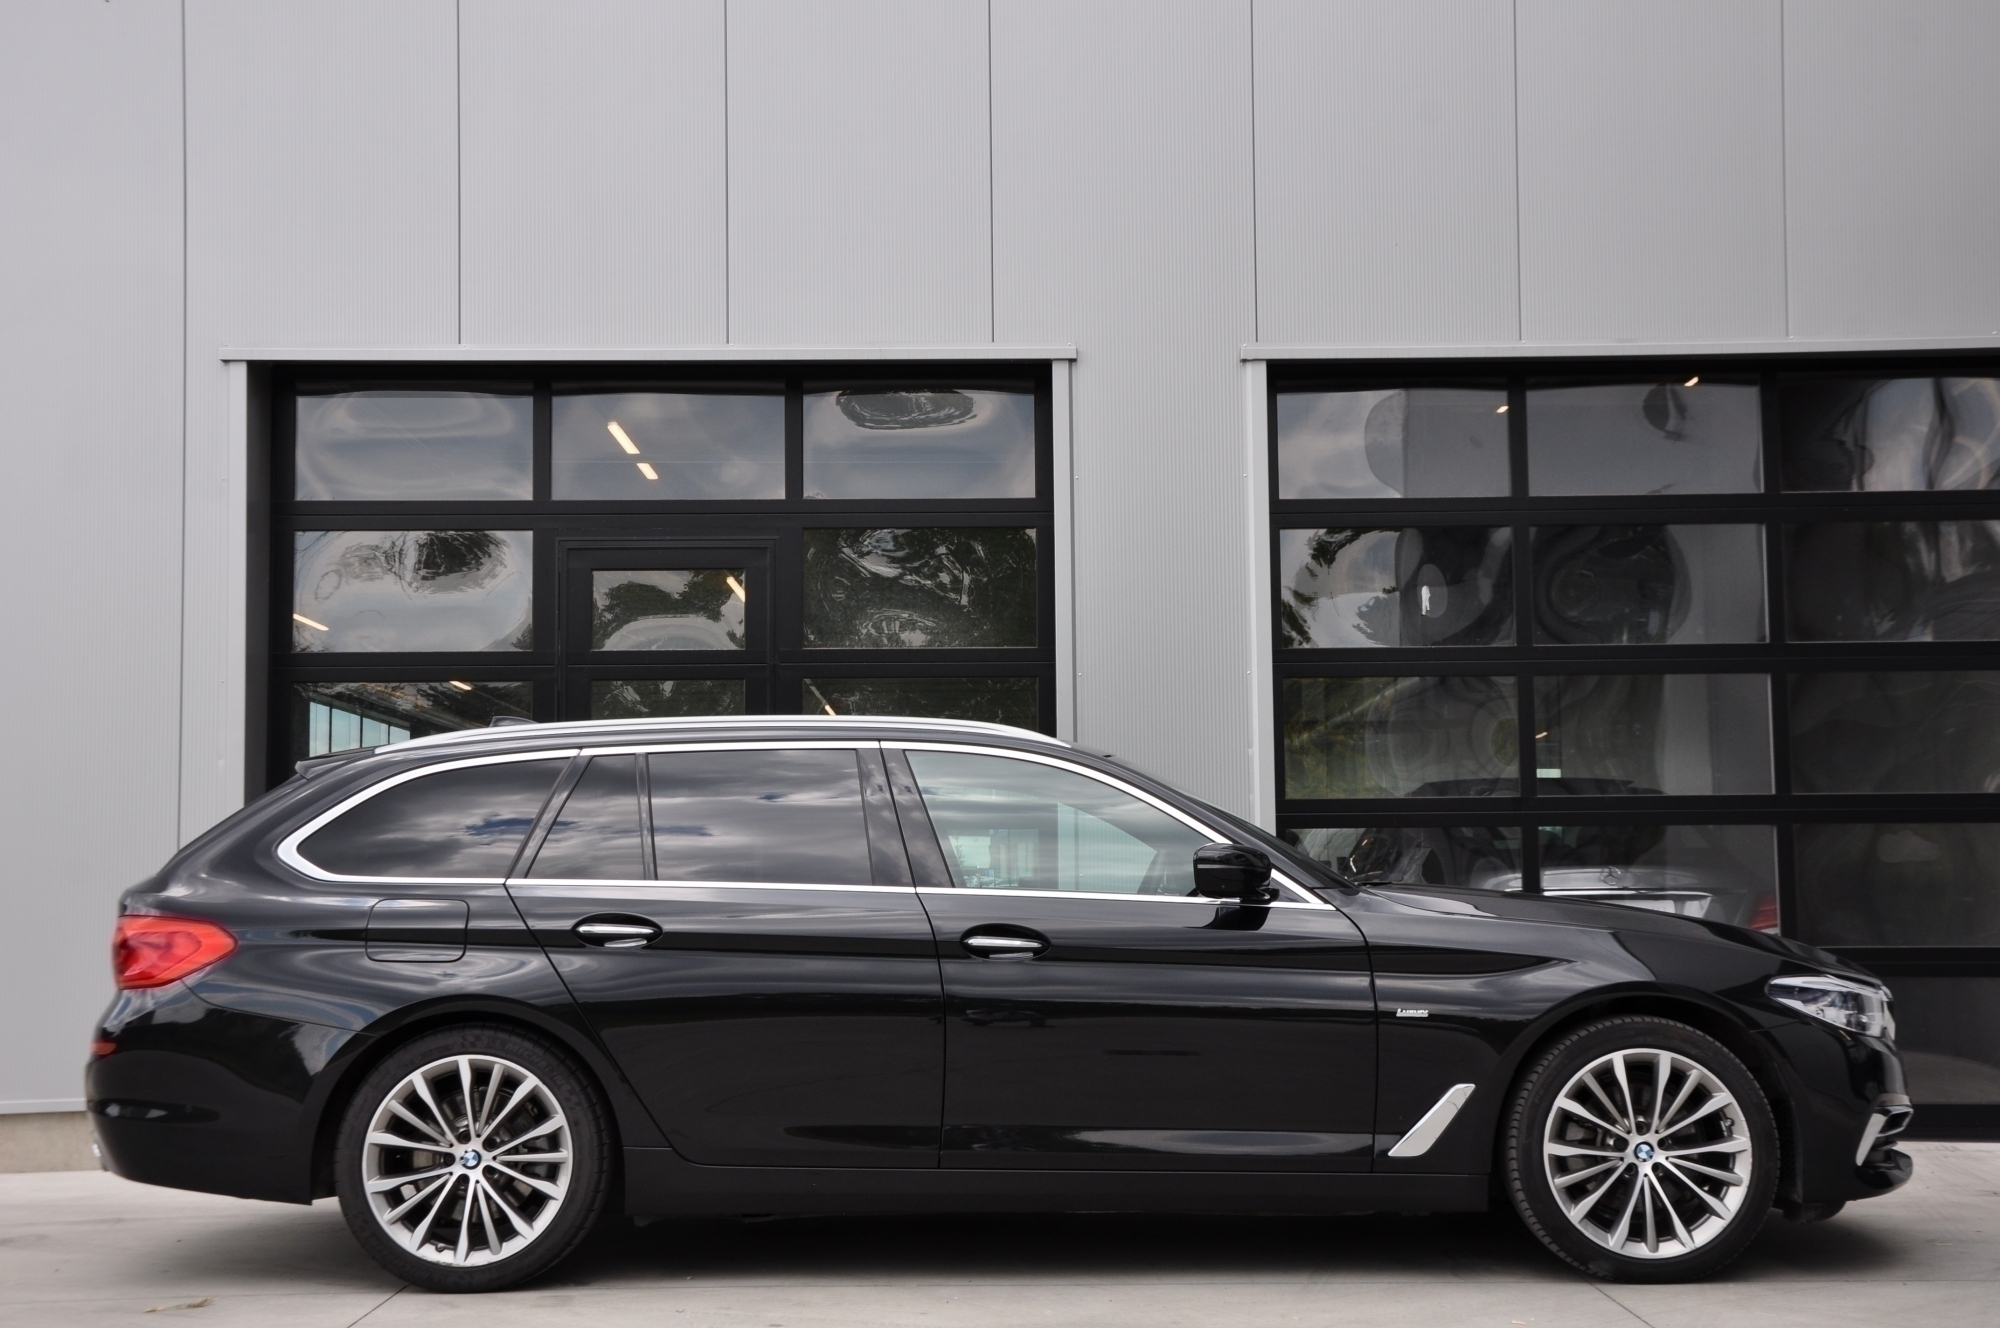 GDC Auto BMW 520 LUXURY - X-DRIVE- PANORAMISCH OPEN DAK - HEAD-UP